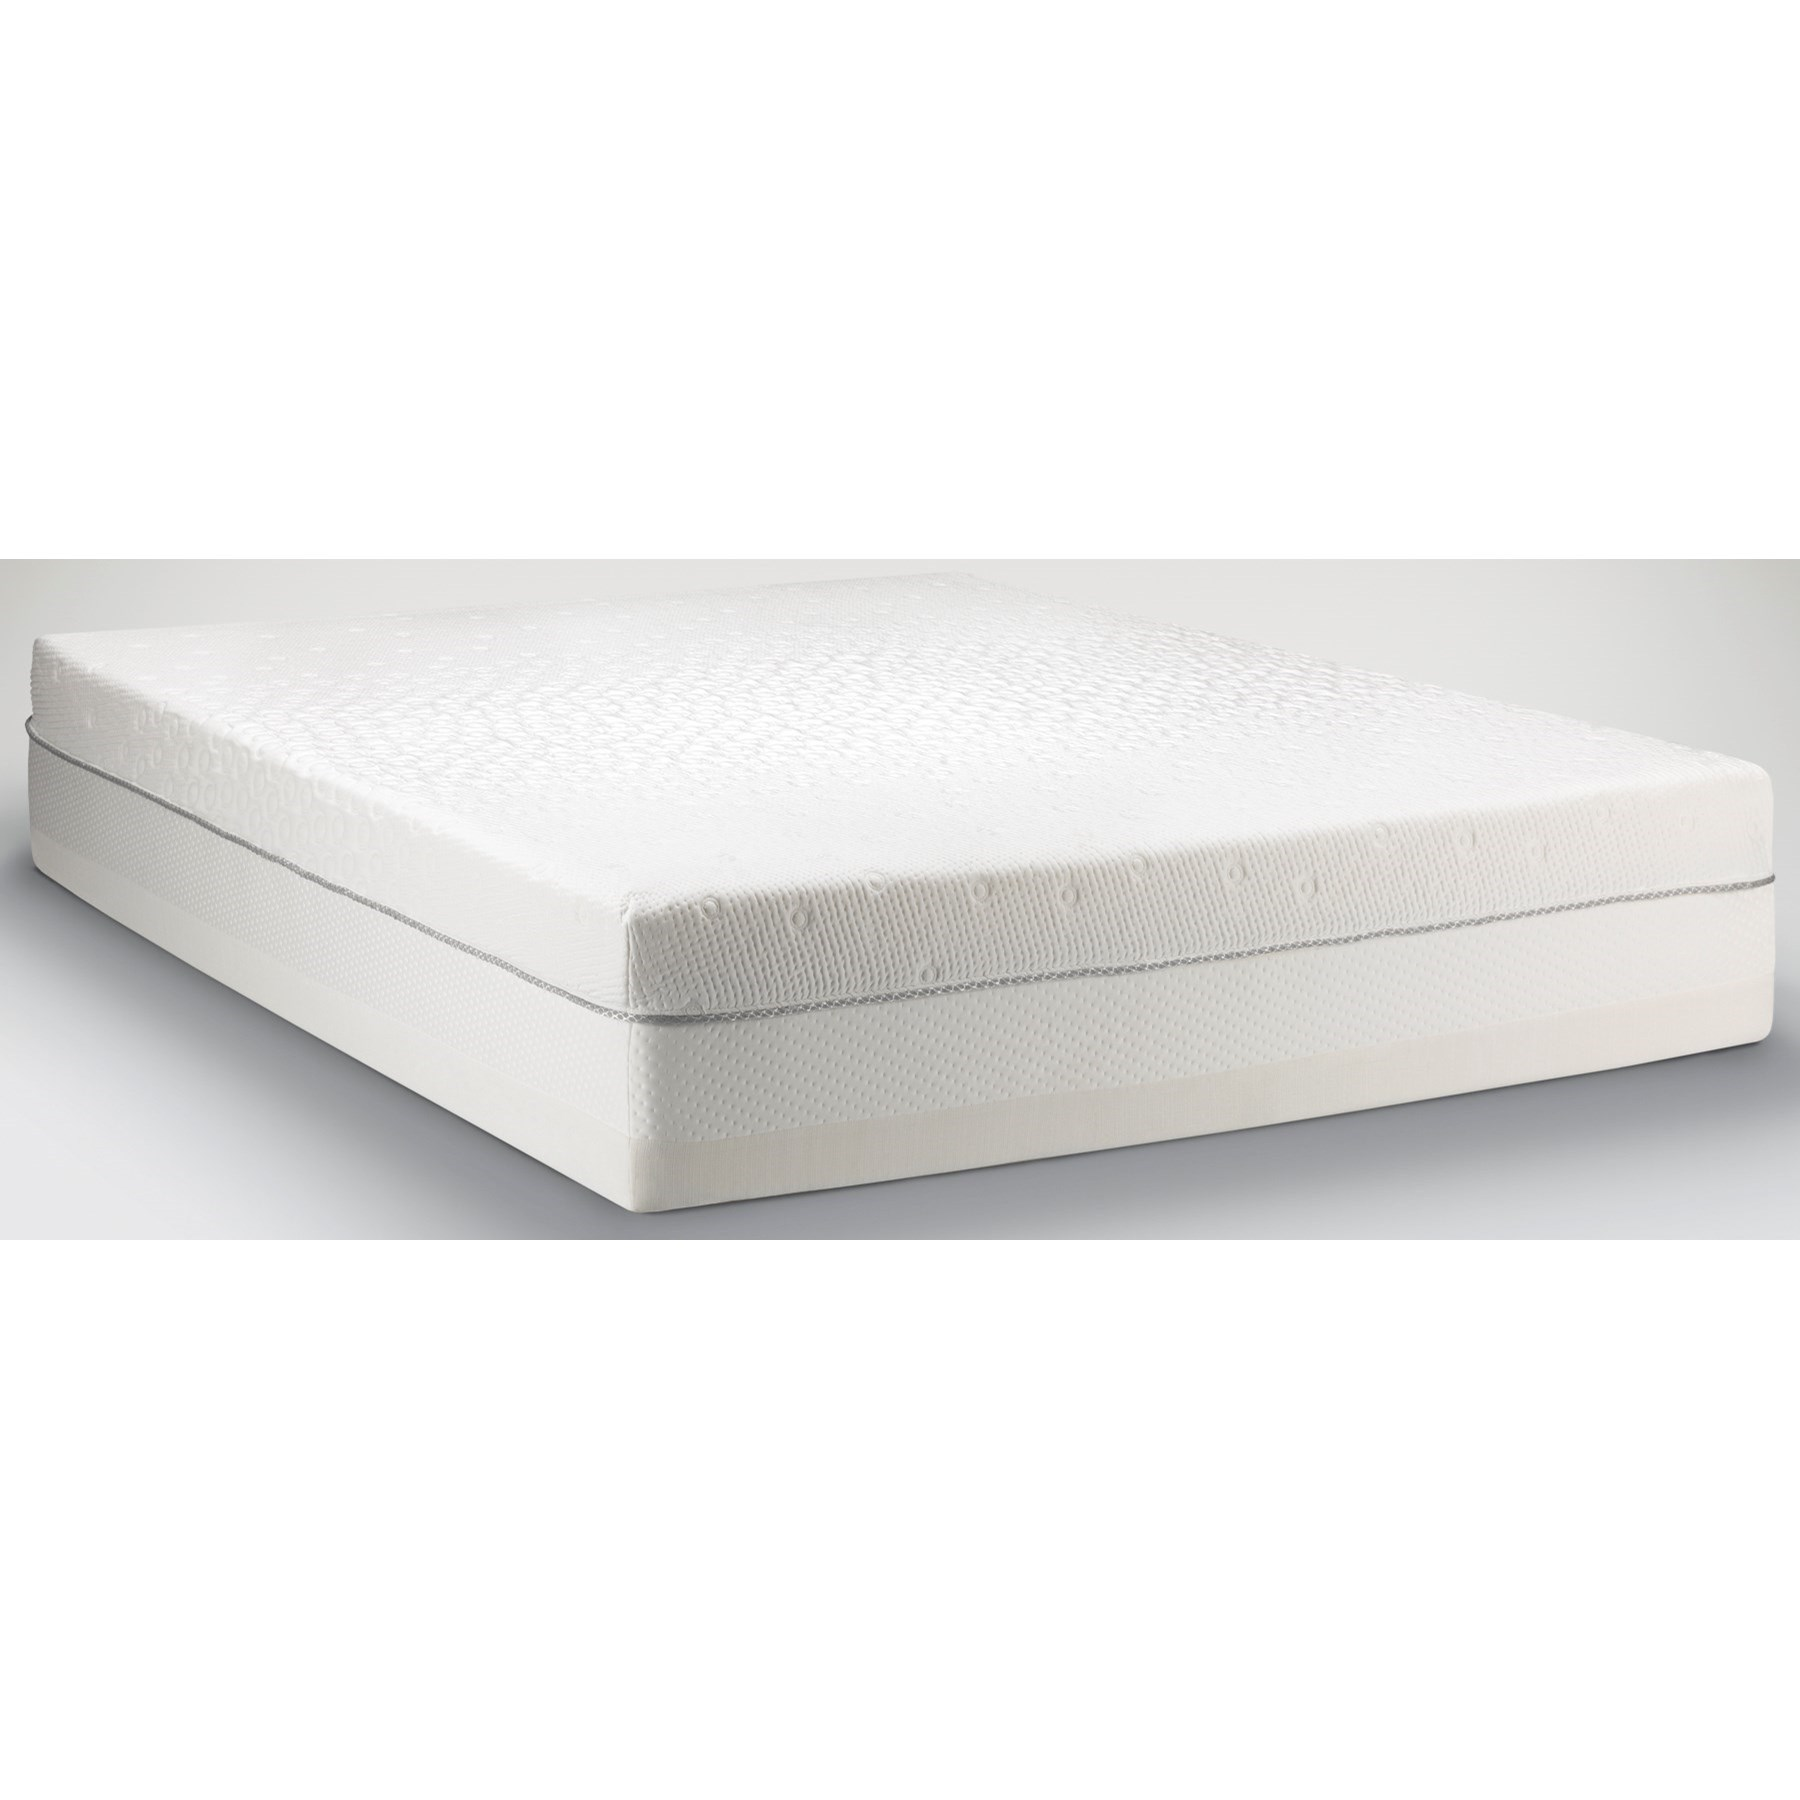 Queen Firm to Medium Soft Mattress by Tempur Pedic